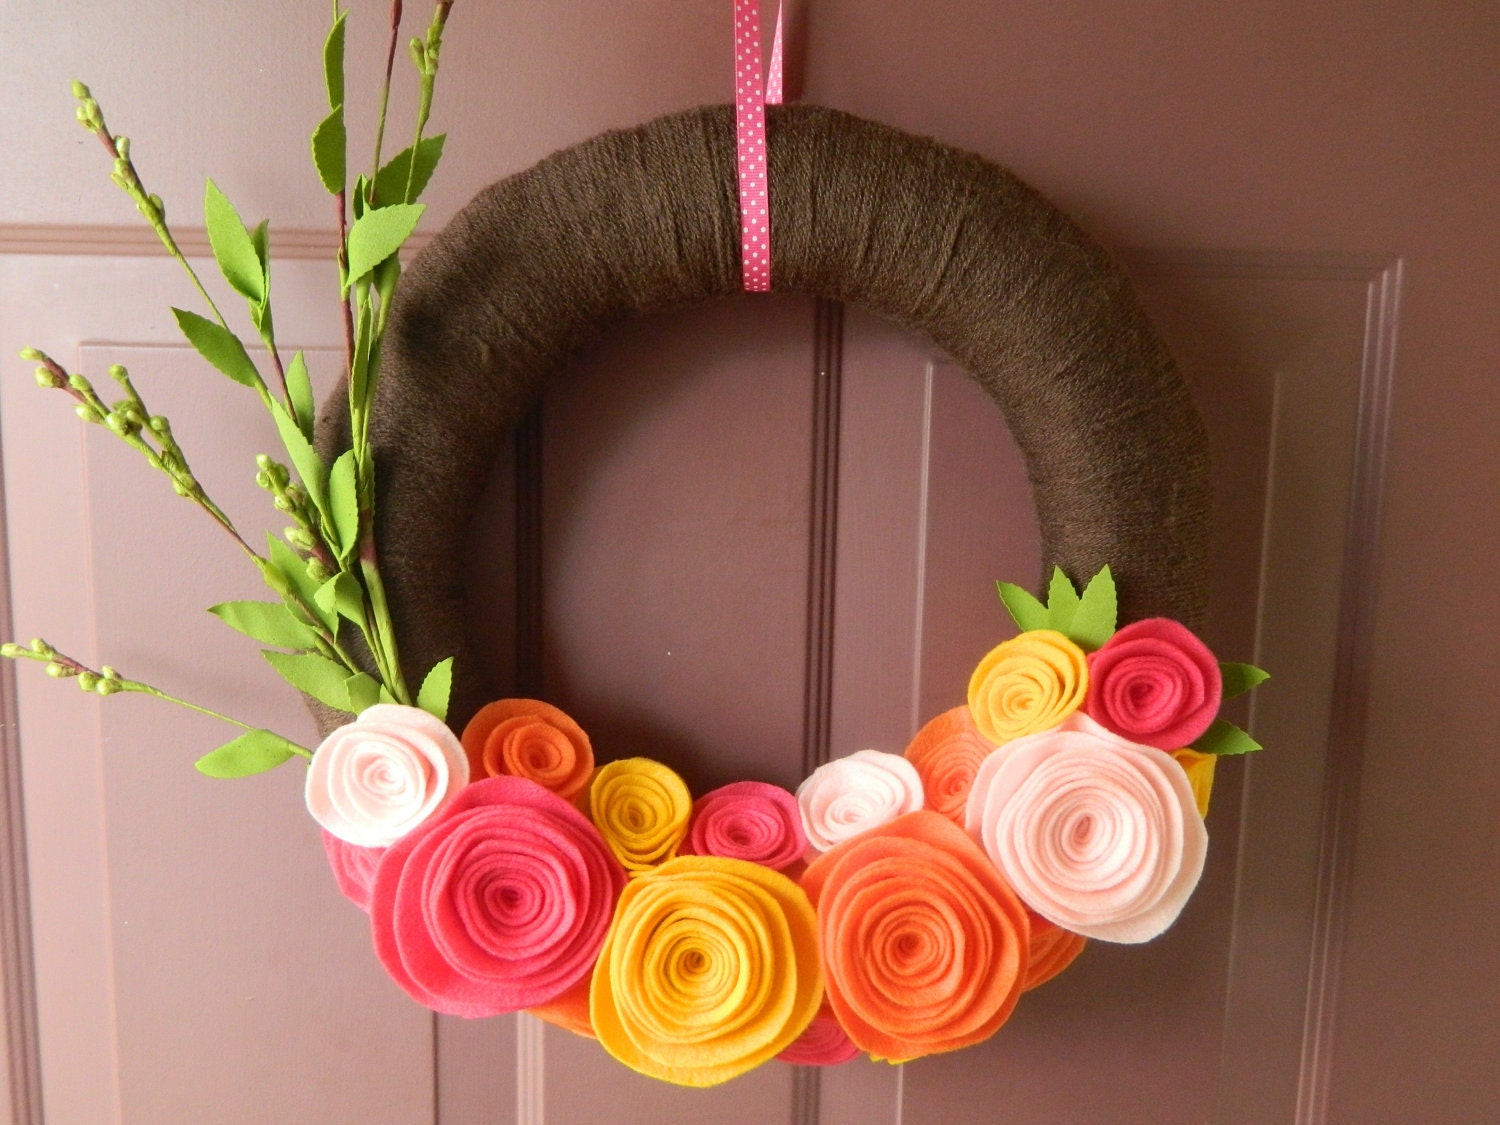 Handmade decorative item for Handmade things videos